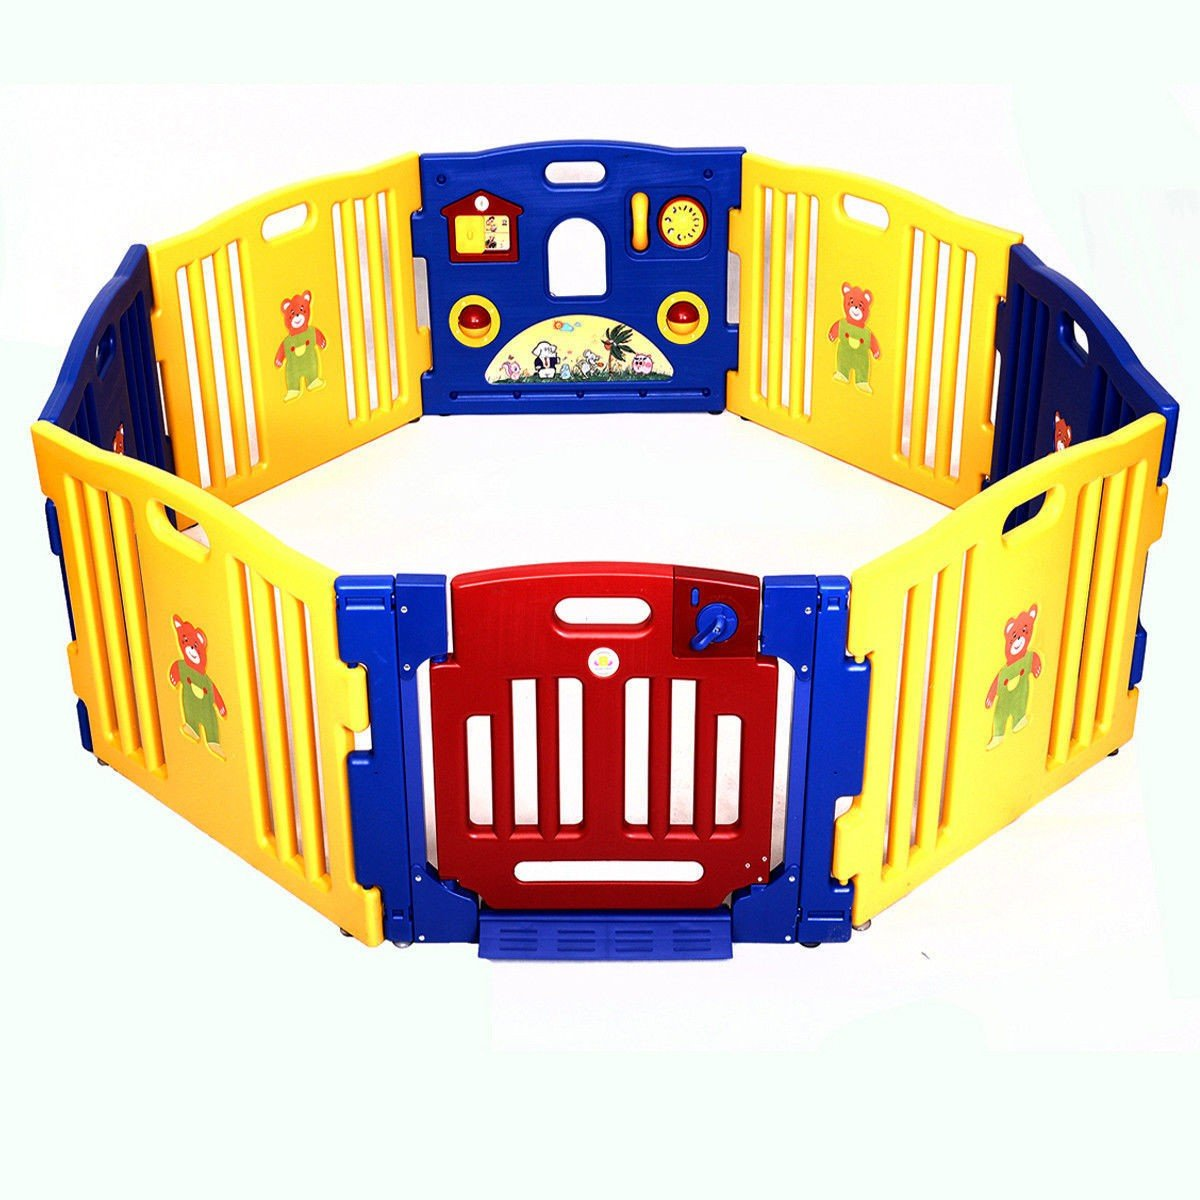 8 Panel Safety Baby Playpen Kids Indoor/Outdoor Play Center With Ebook by MRT SUPPLY (Image #1)